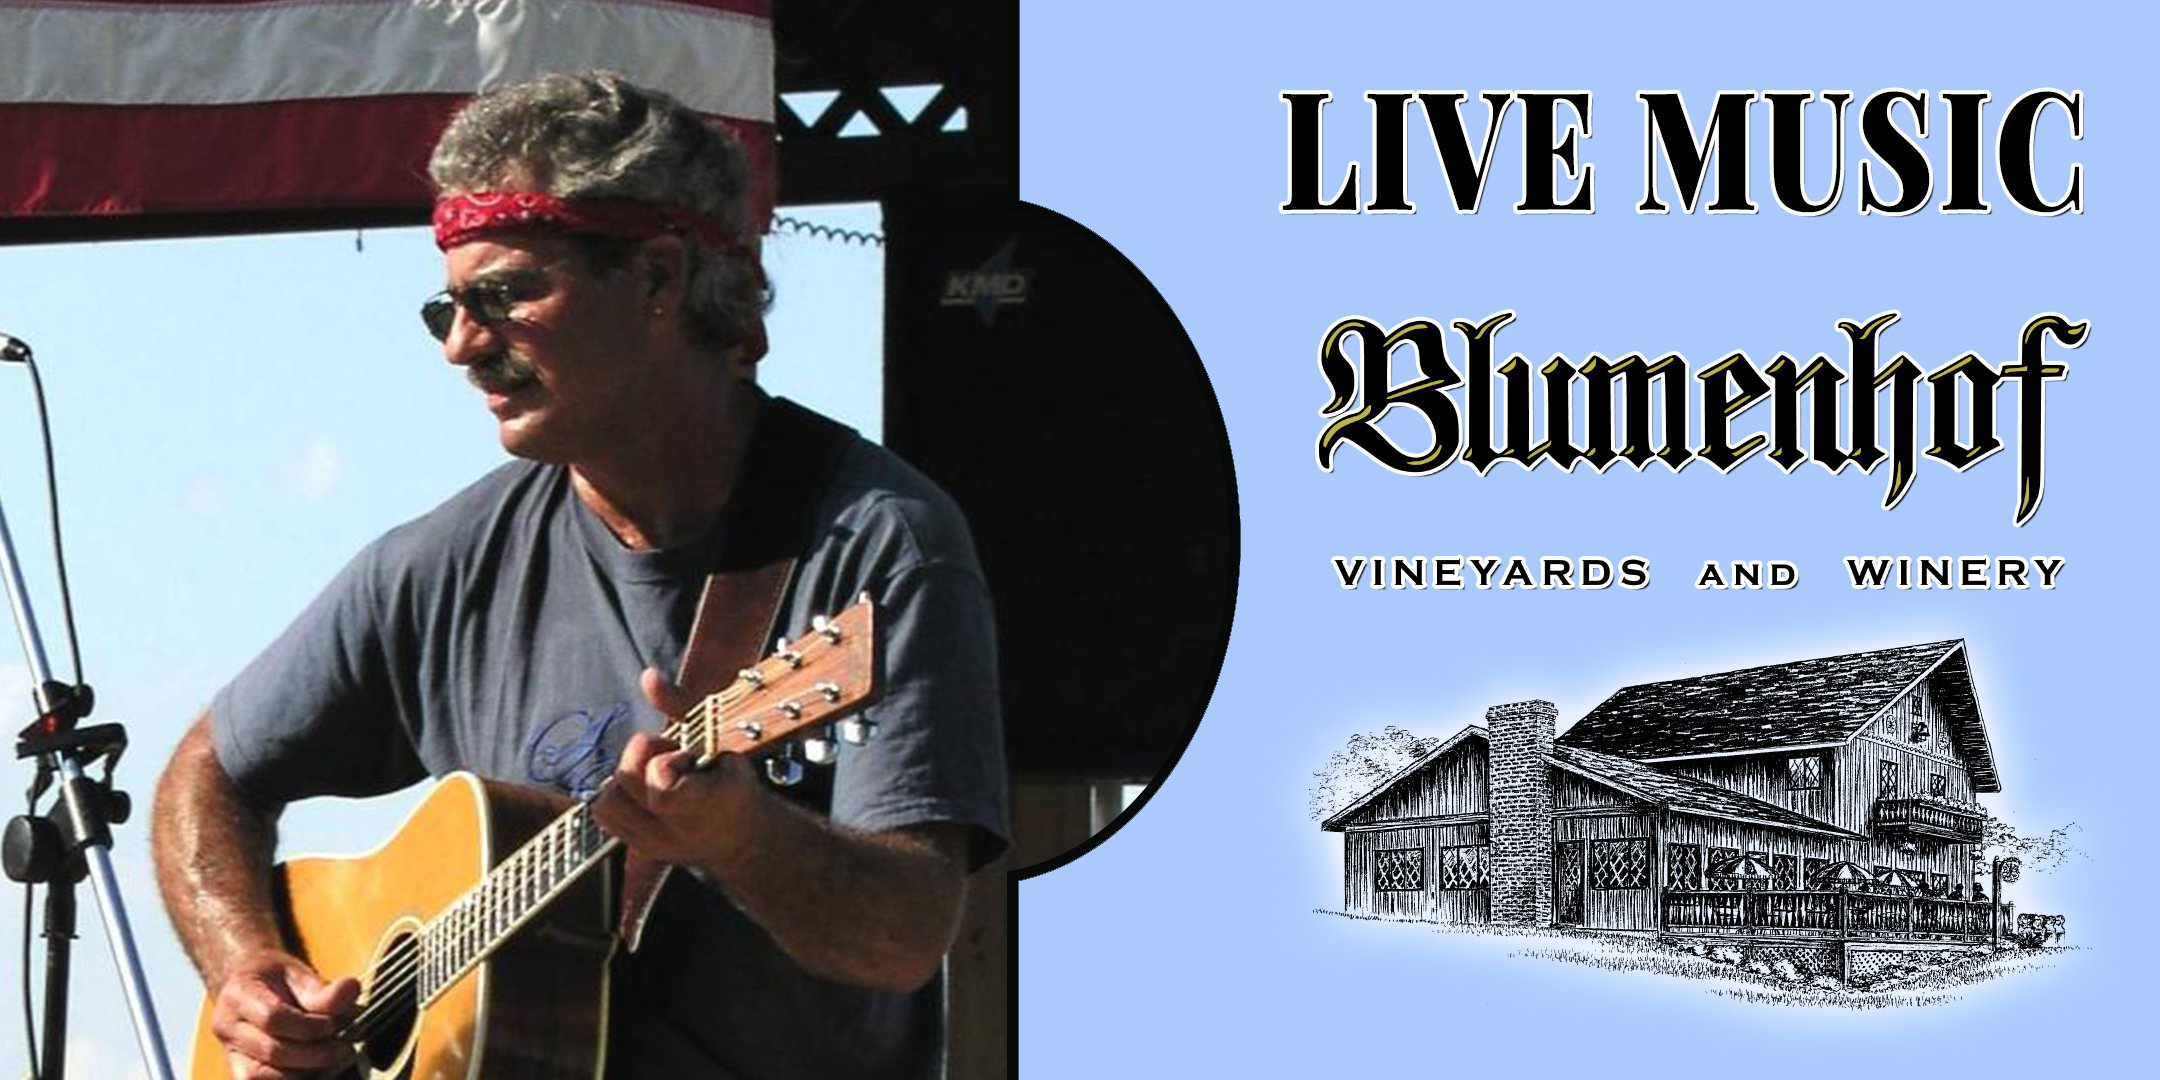 Rick Curtright (classic rock) at Blumenhof Winery